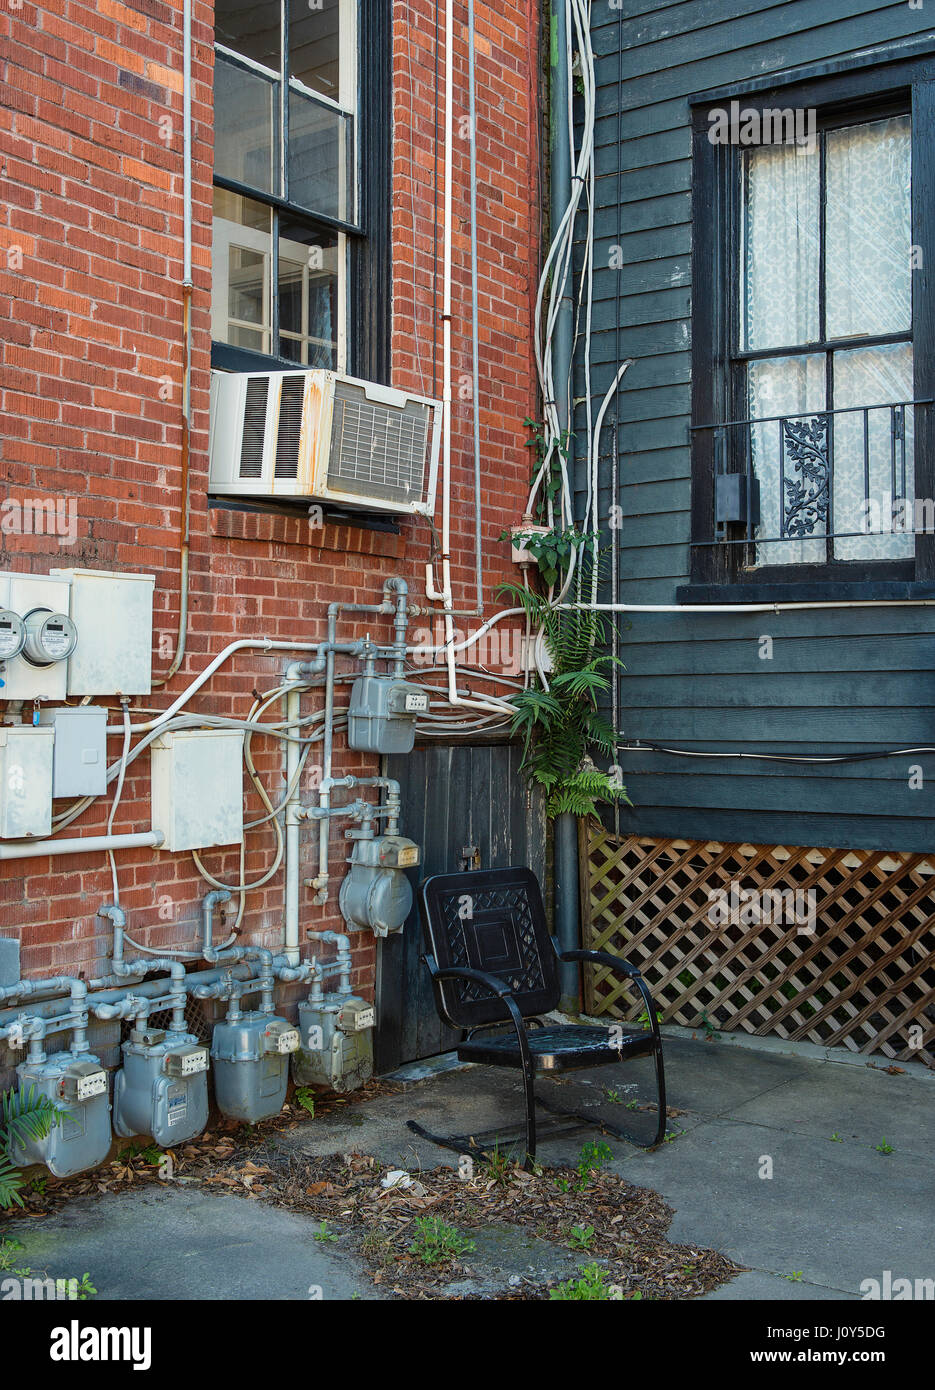 A chair next to some gas meter readers. - Stock Image